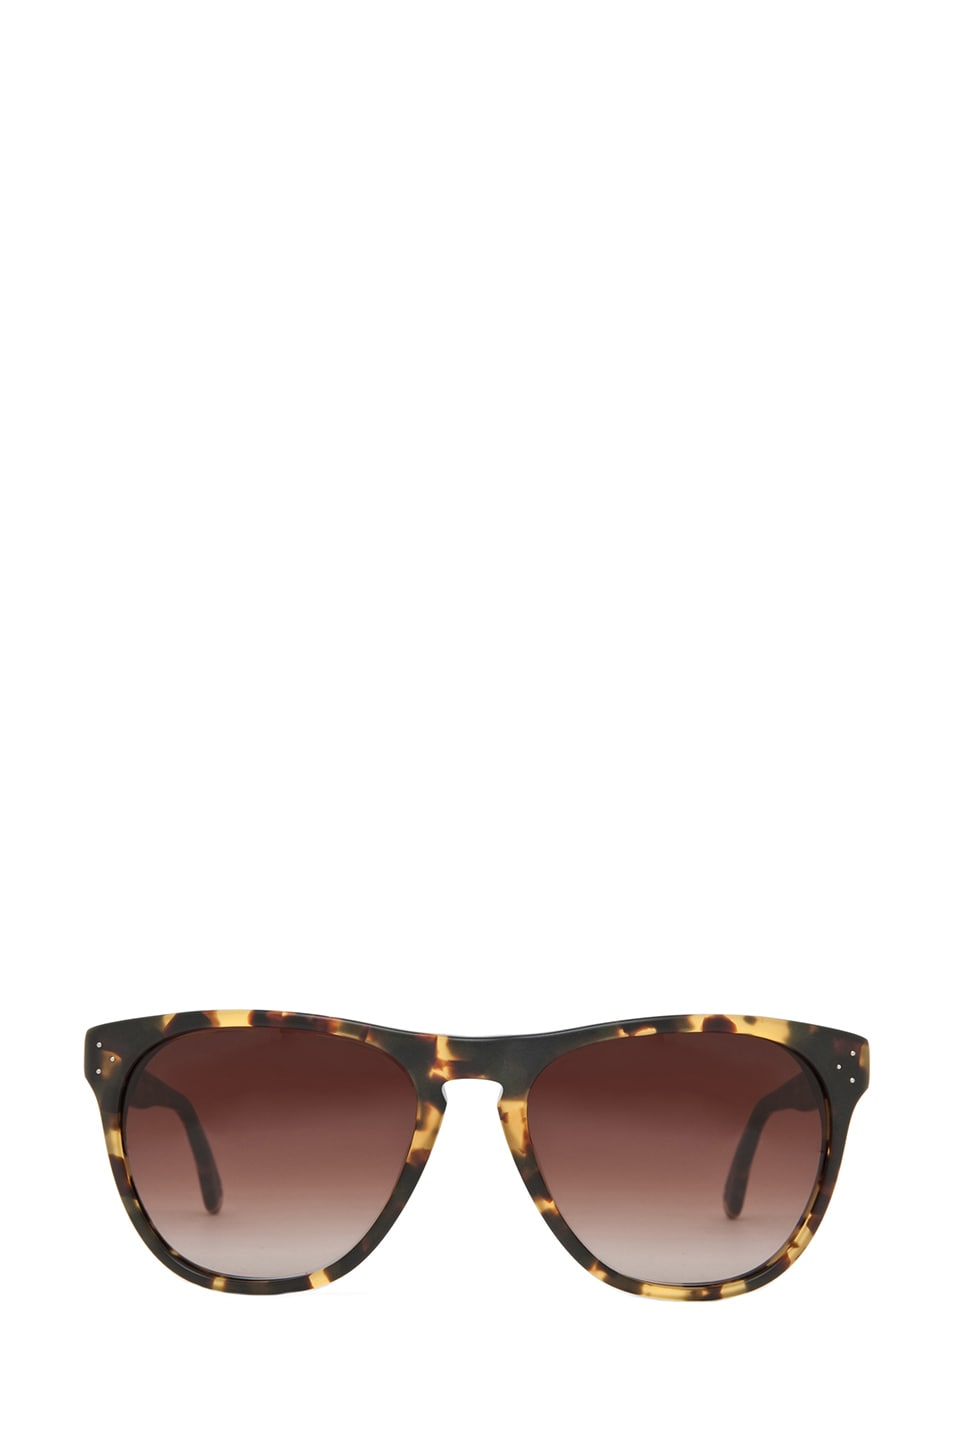 Image 1 of Oliver Peoples Daddy B Sunglasses in Matte Dark Brown Tortoise